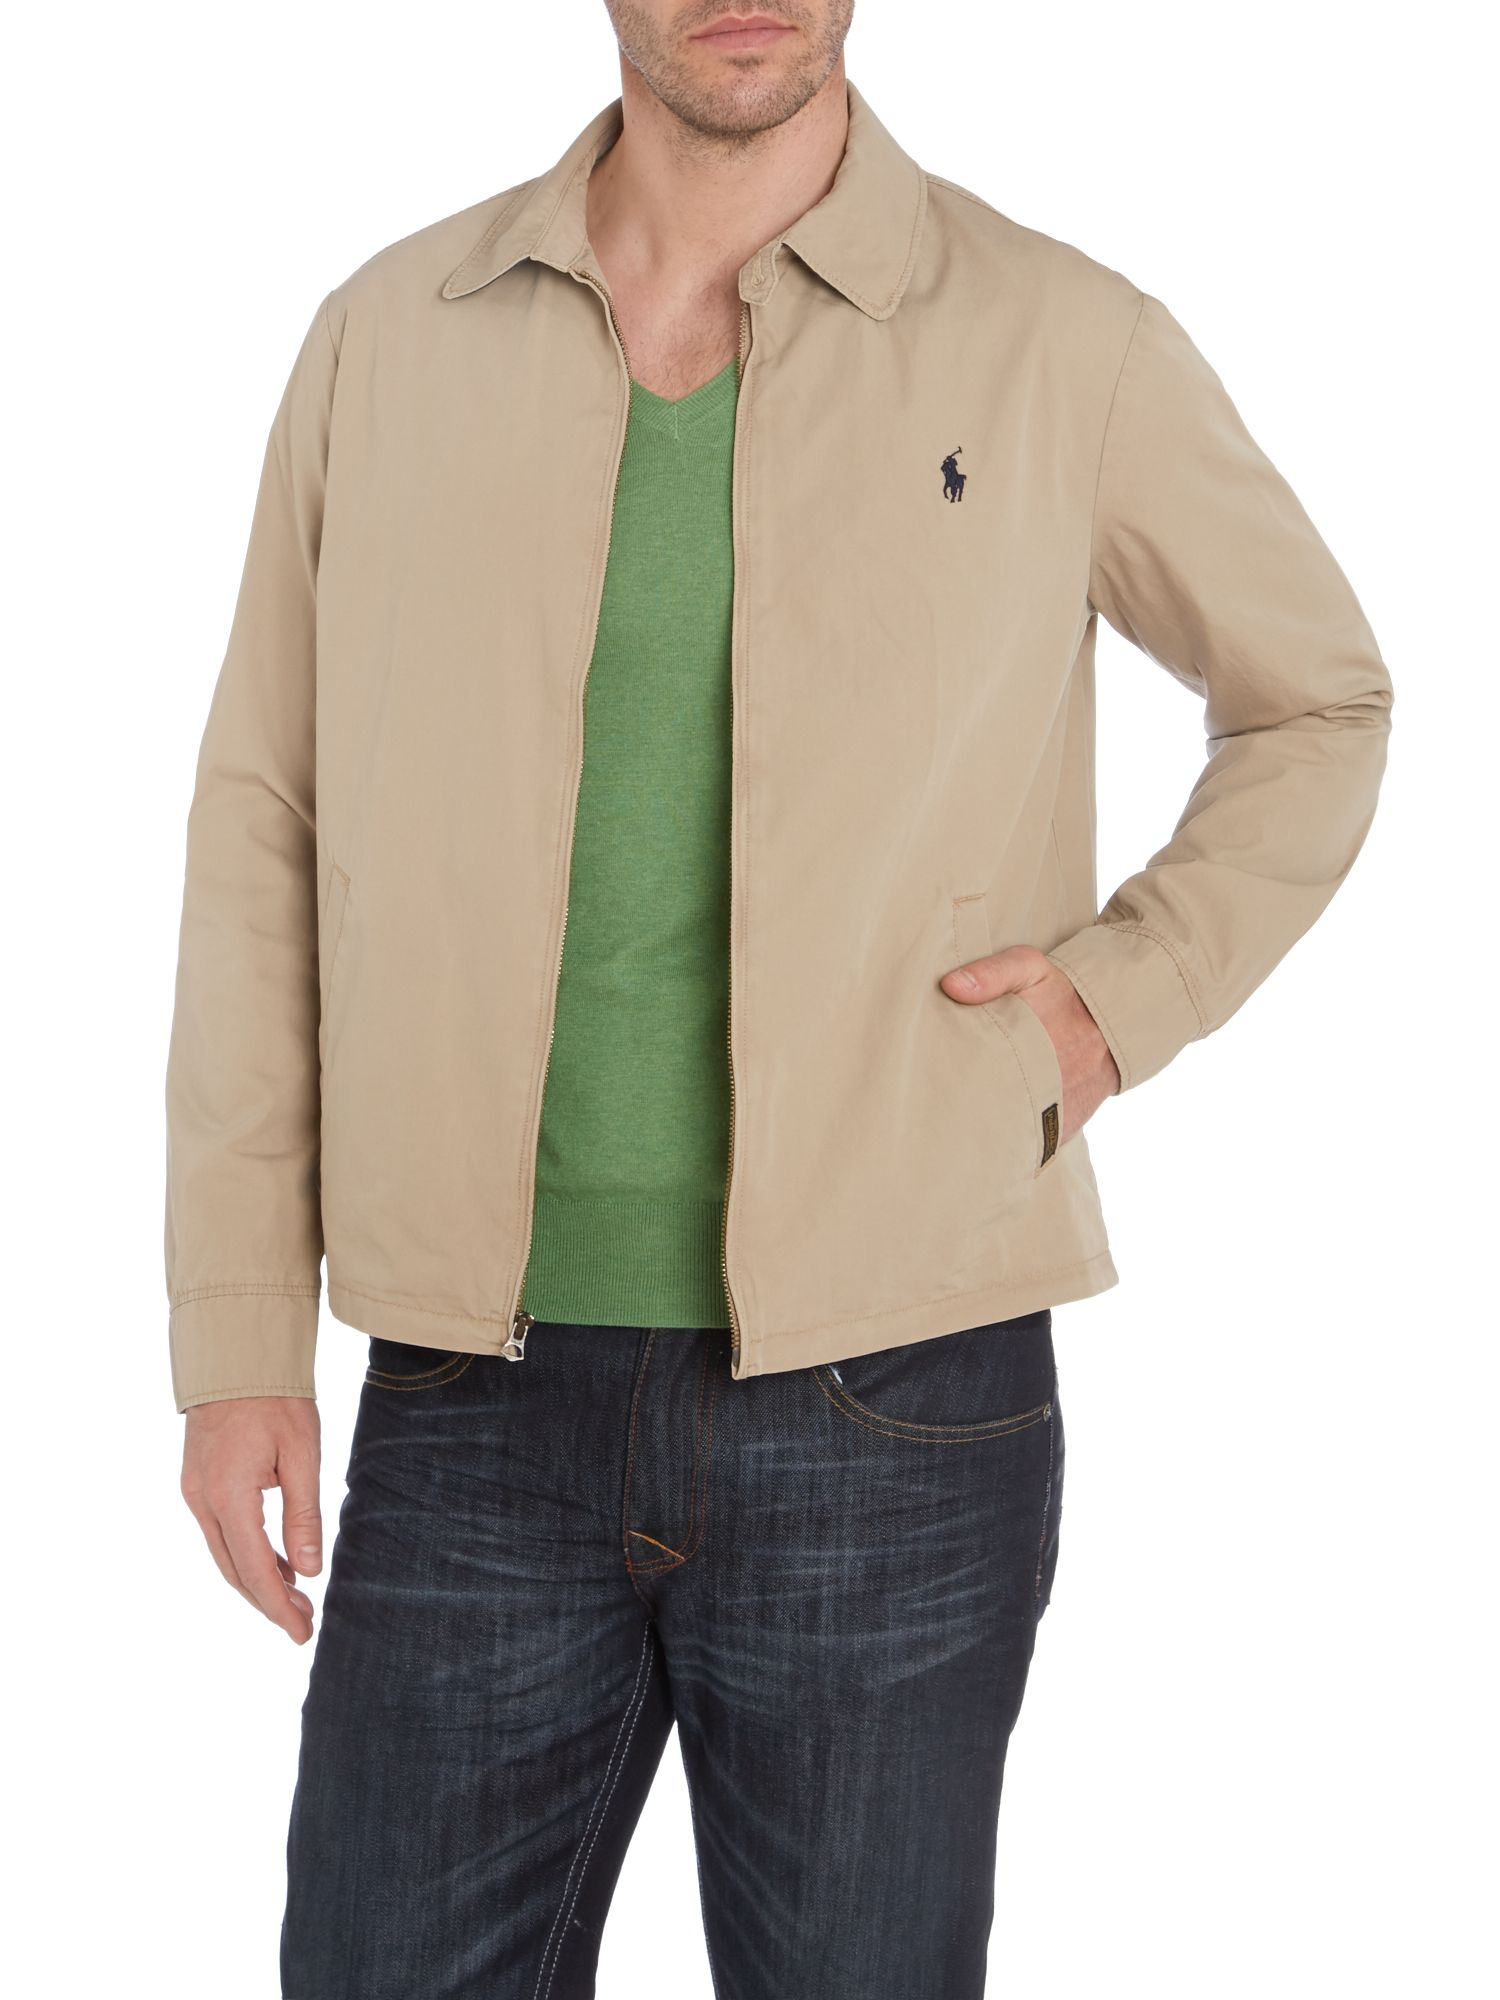 Classic landon windbreaker jacket